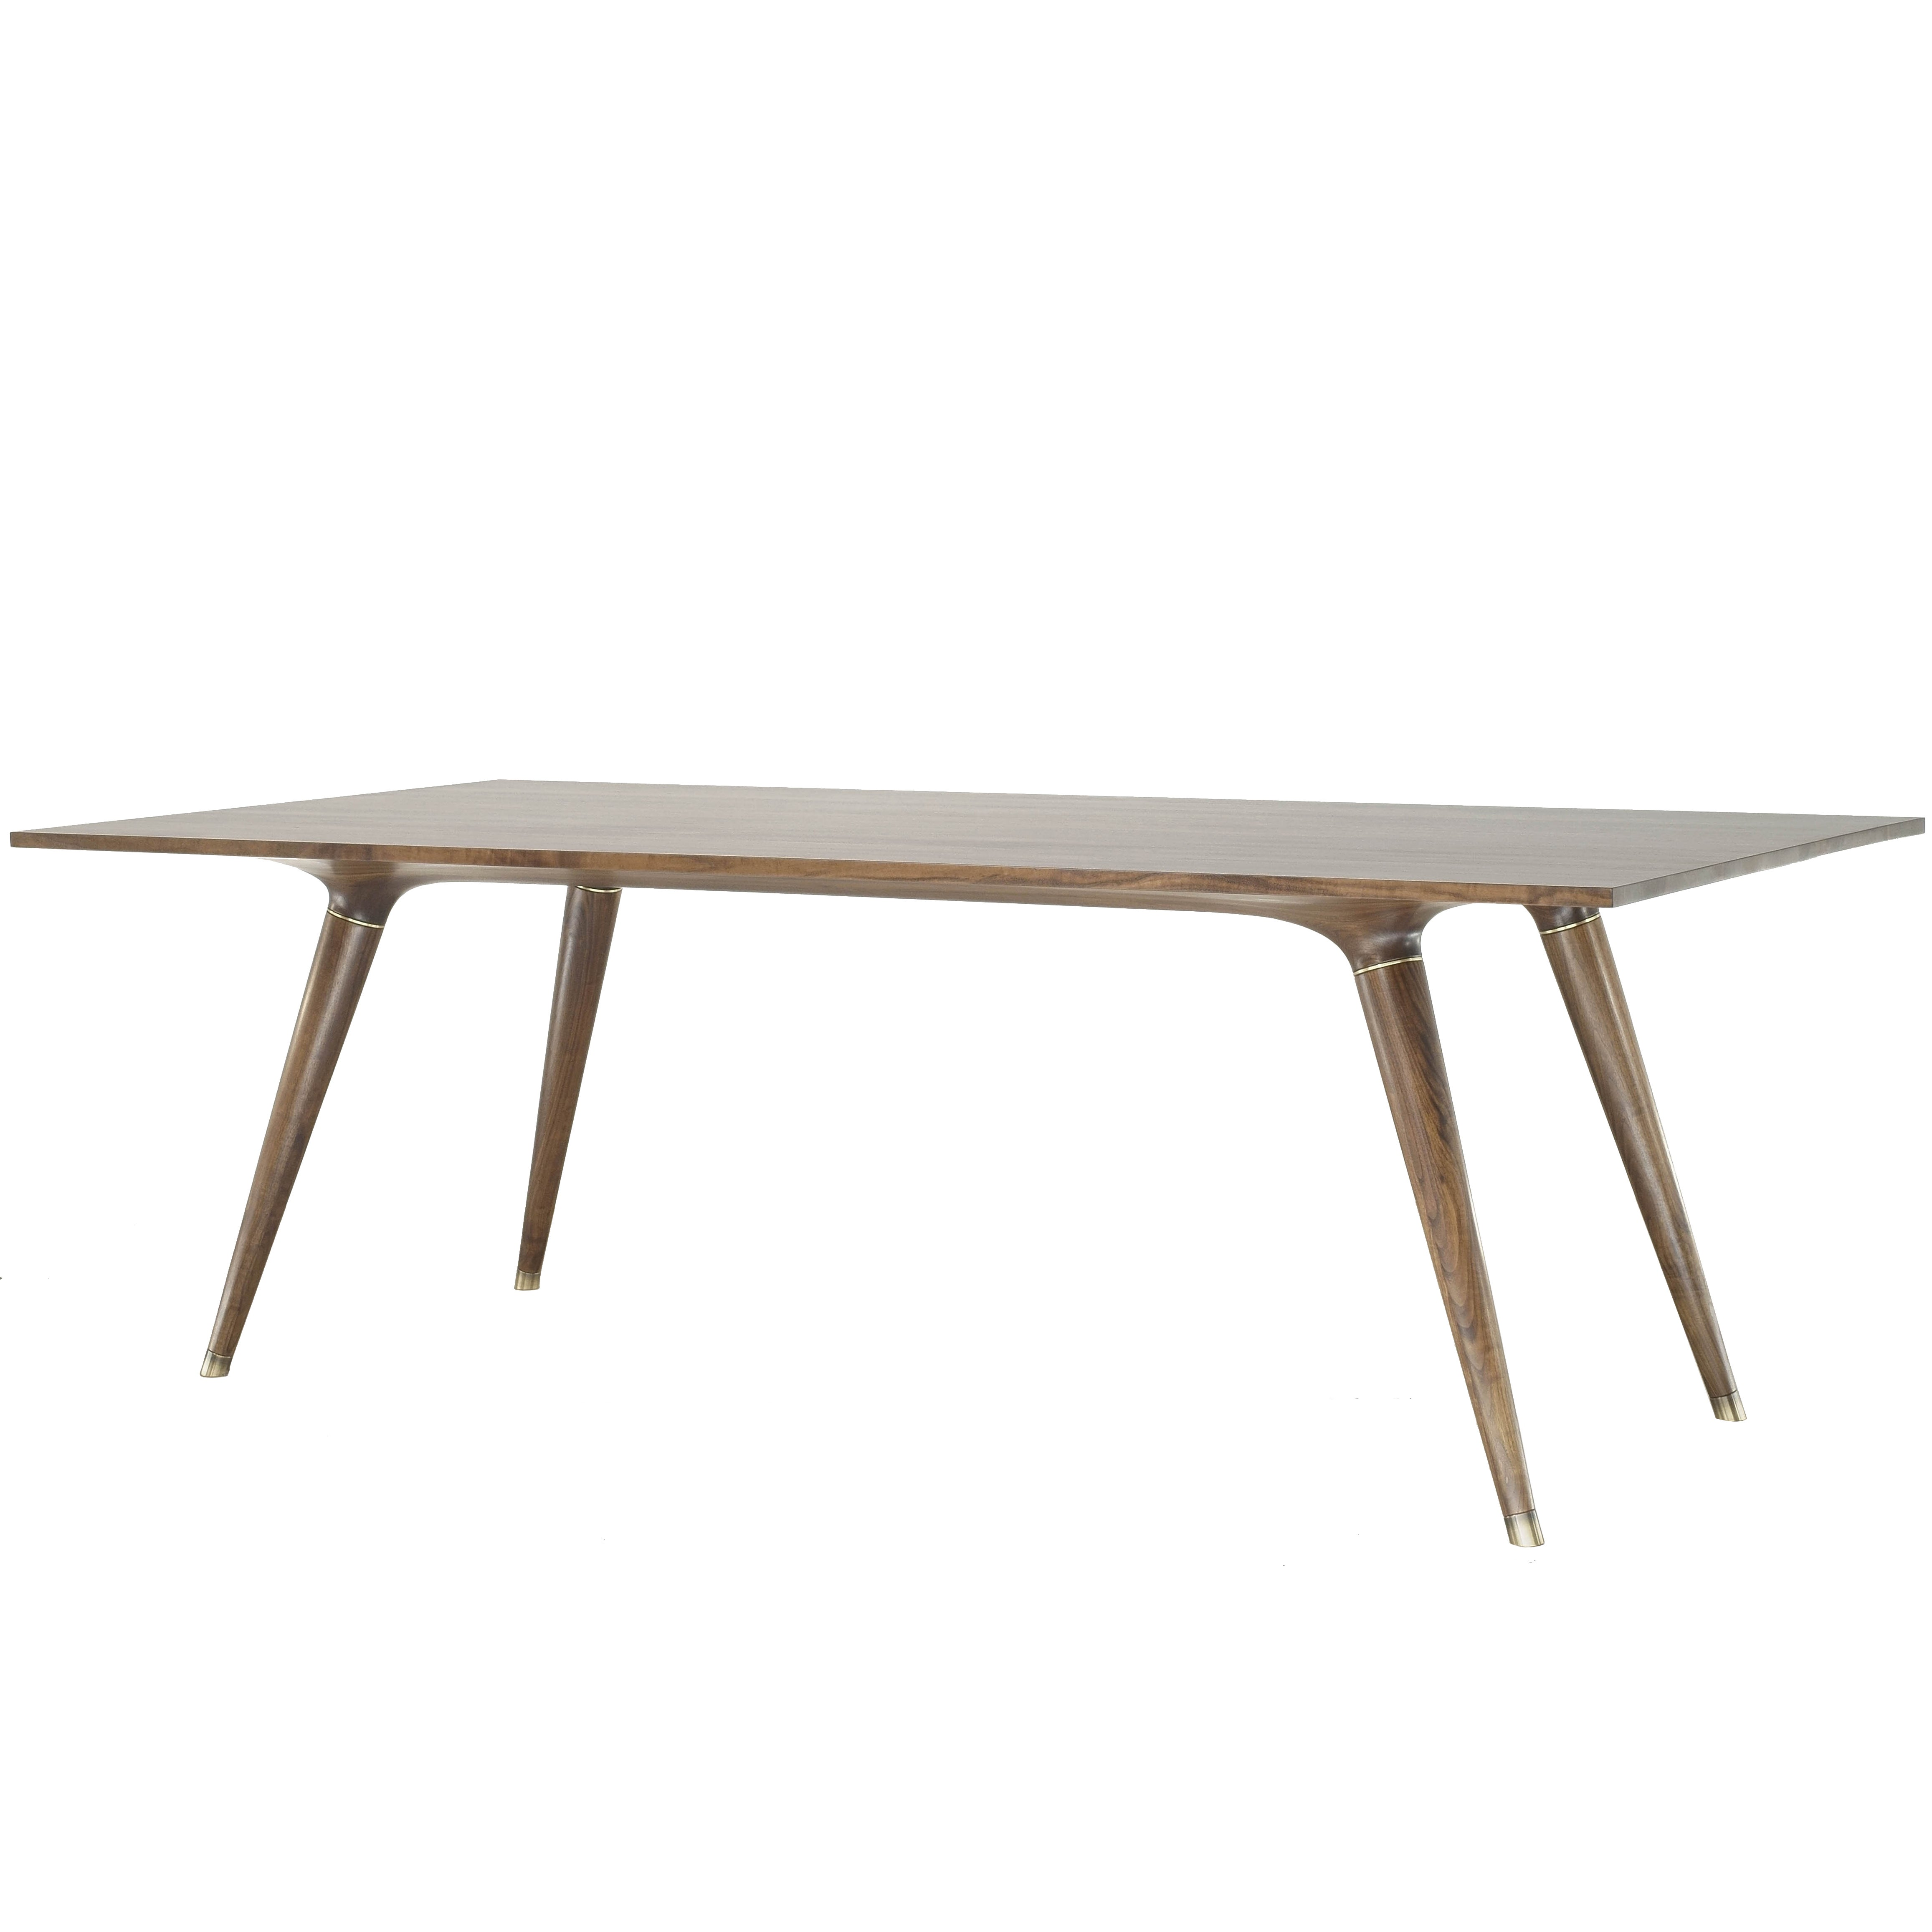 Contemporary Dining Table in Carved Walnut with Brass Accents